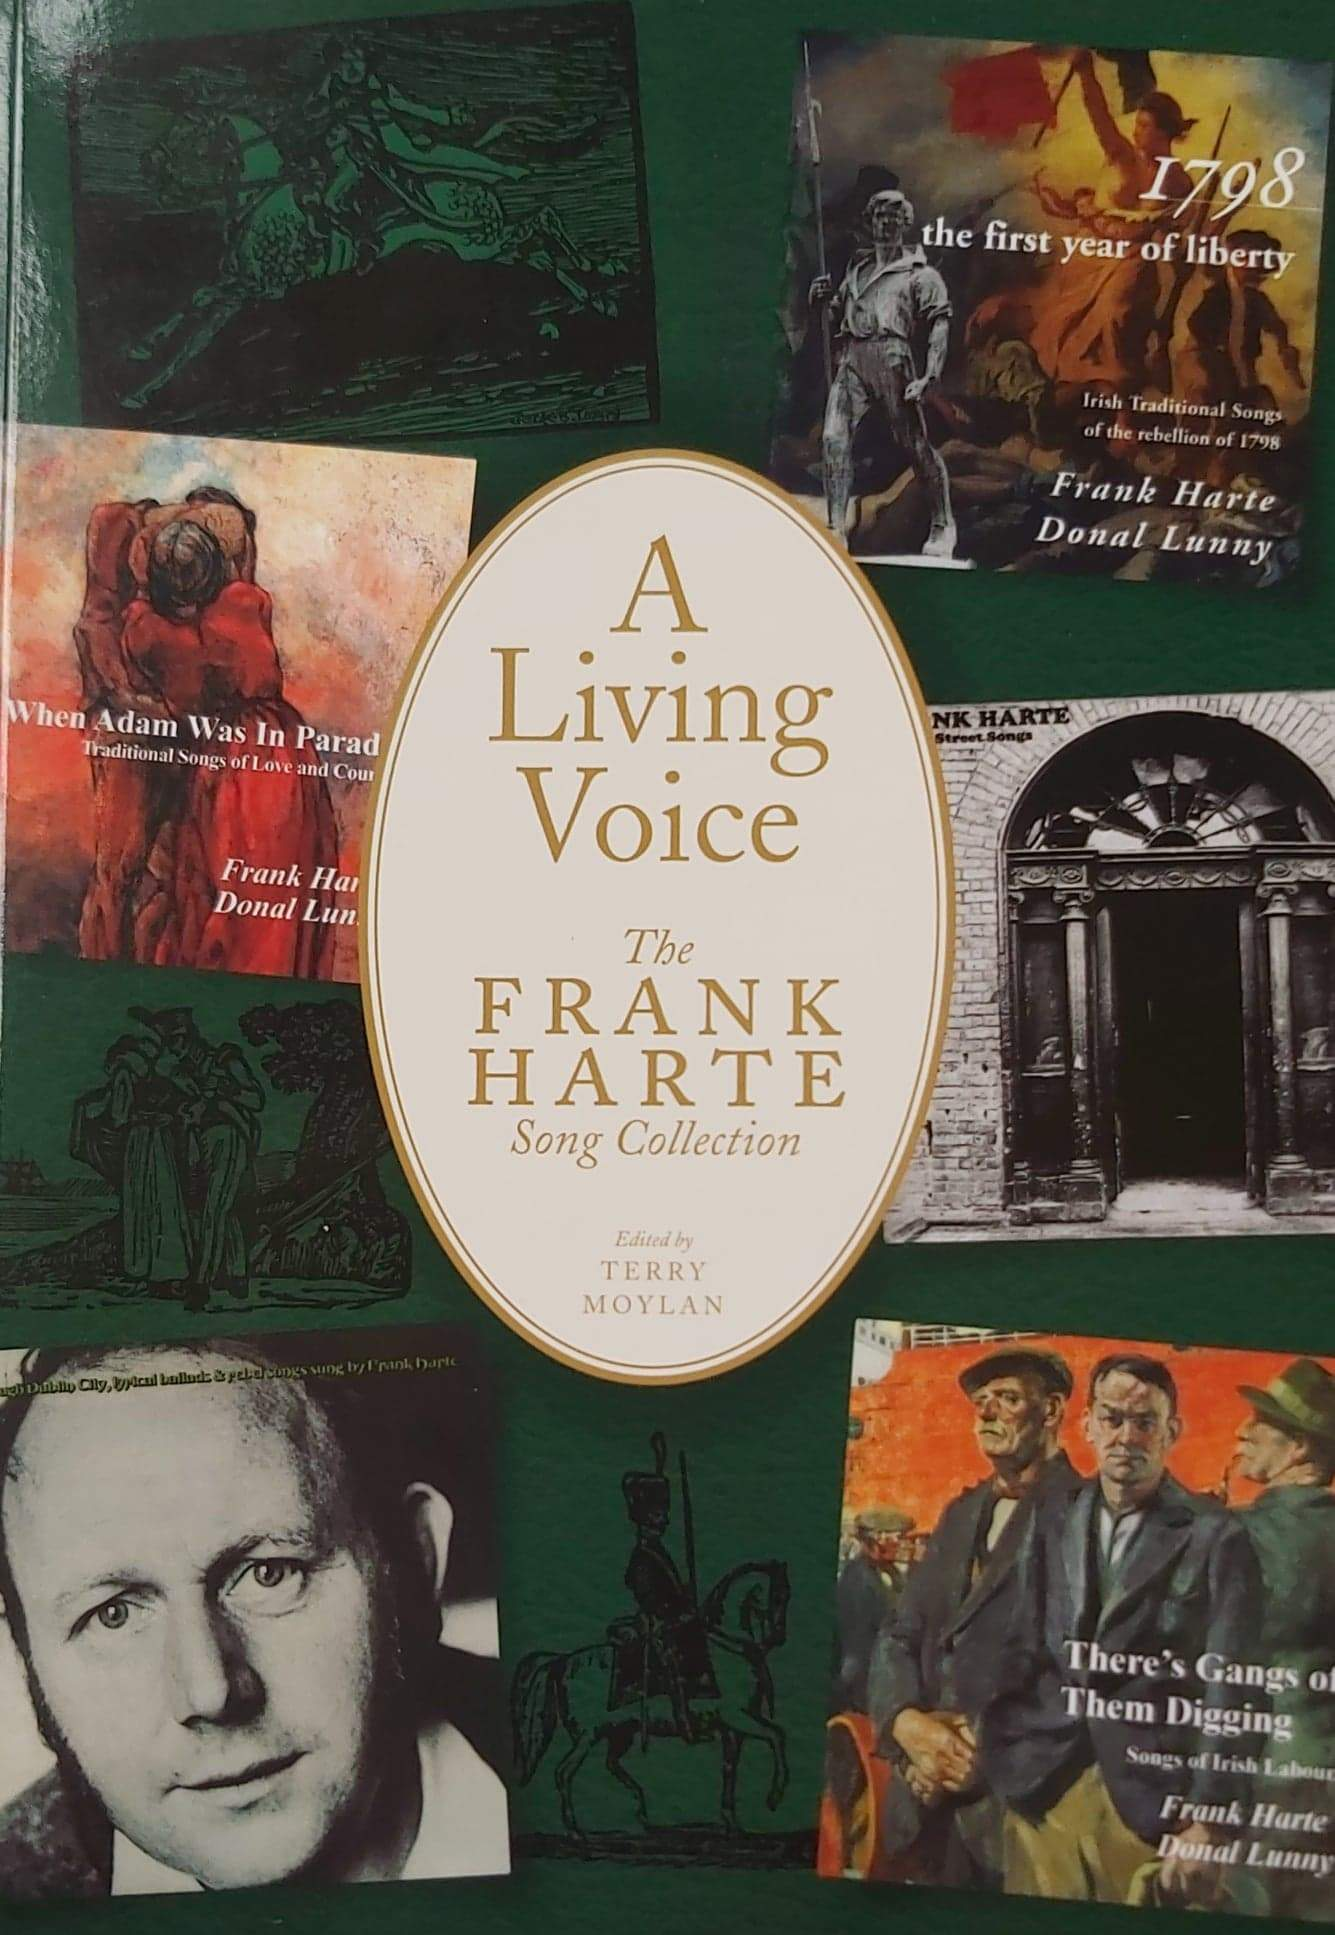 A Living Voice: The Frank Harte Song Collection | Frank Harte | Charlie Byrne's